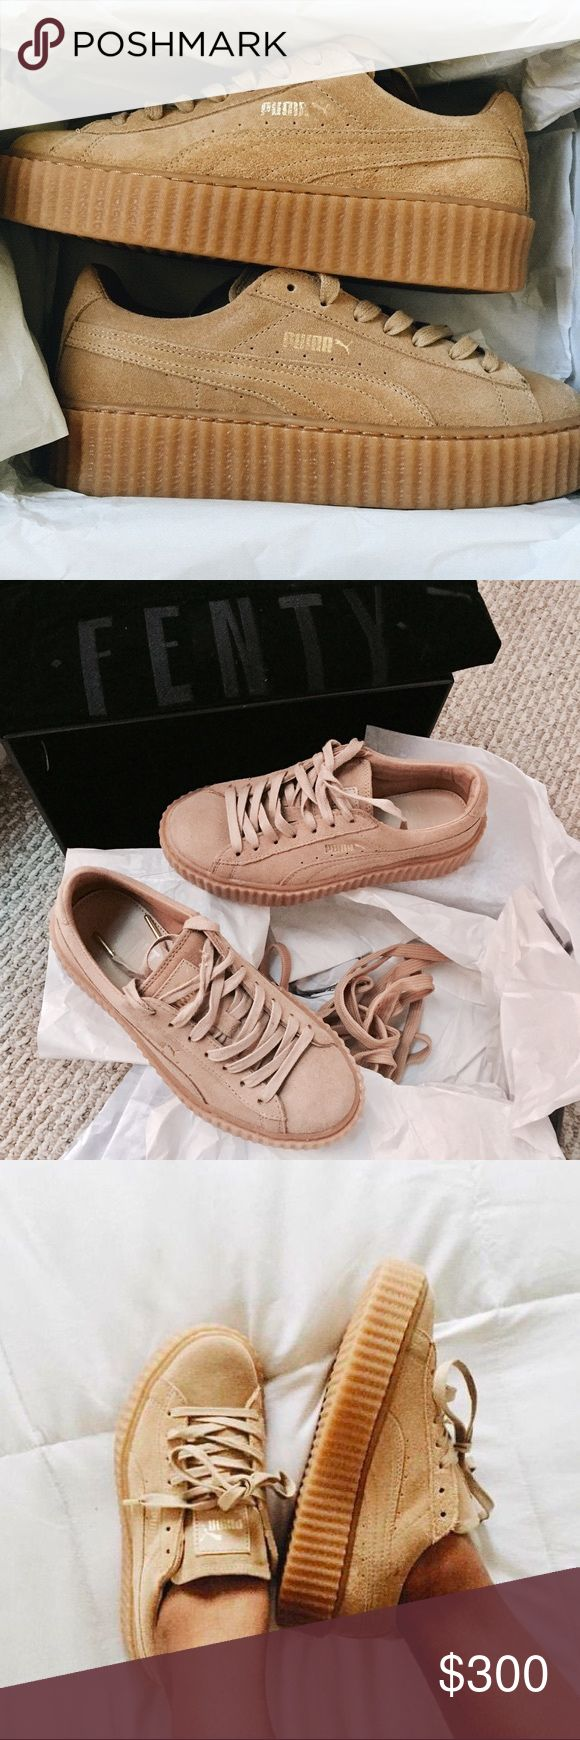 FENTY PUMA x RIHANNA Suede Creepers in Oatmeal 6 Women's size US6 / EU36. Brand new in the box + the duster. Never been worn. ❌ No Trades Puma Shoes Sneakers